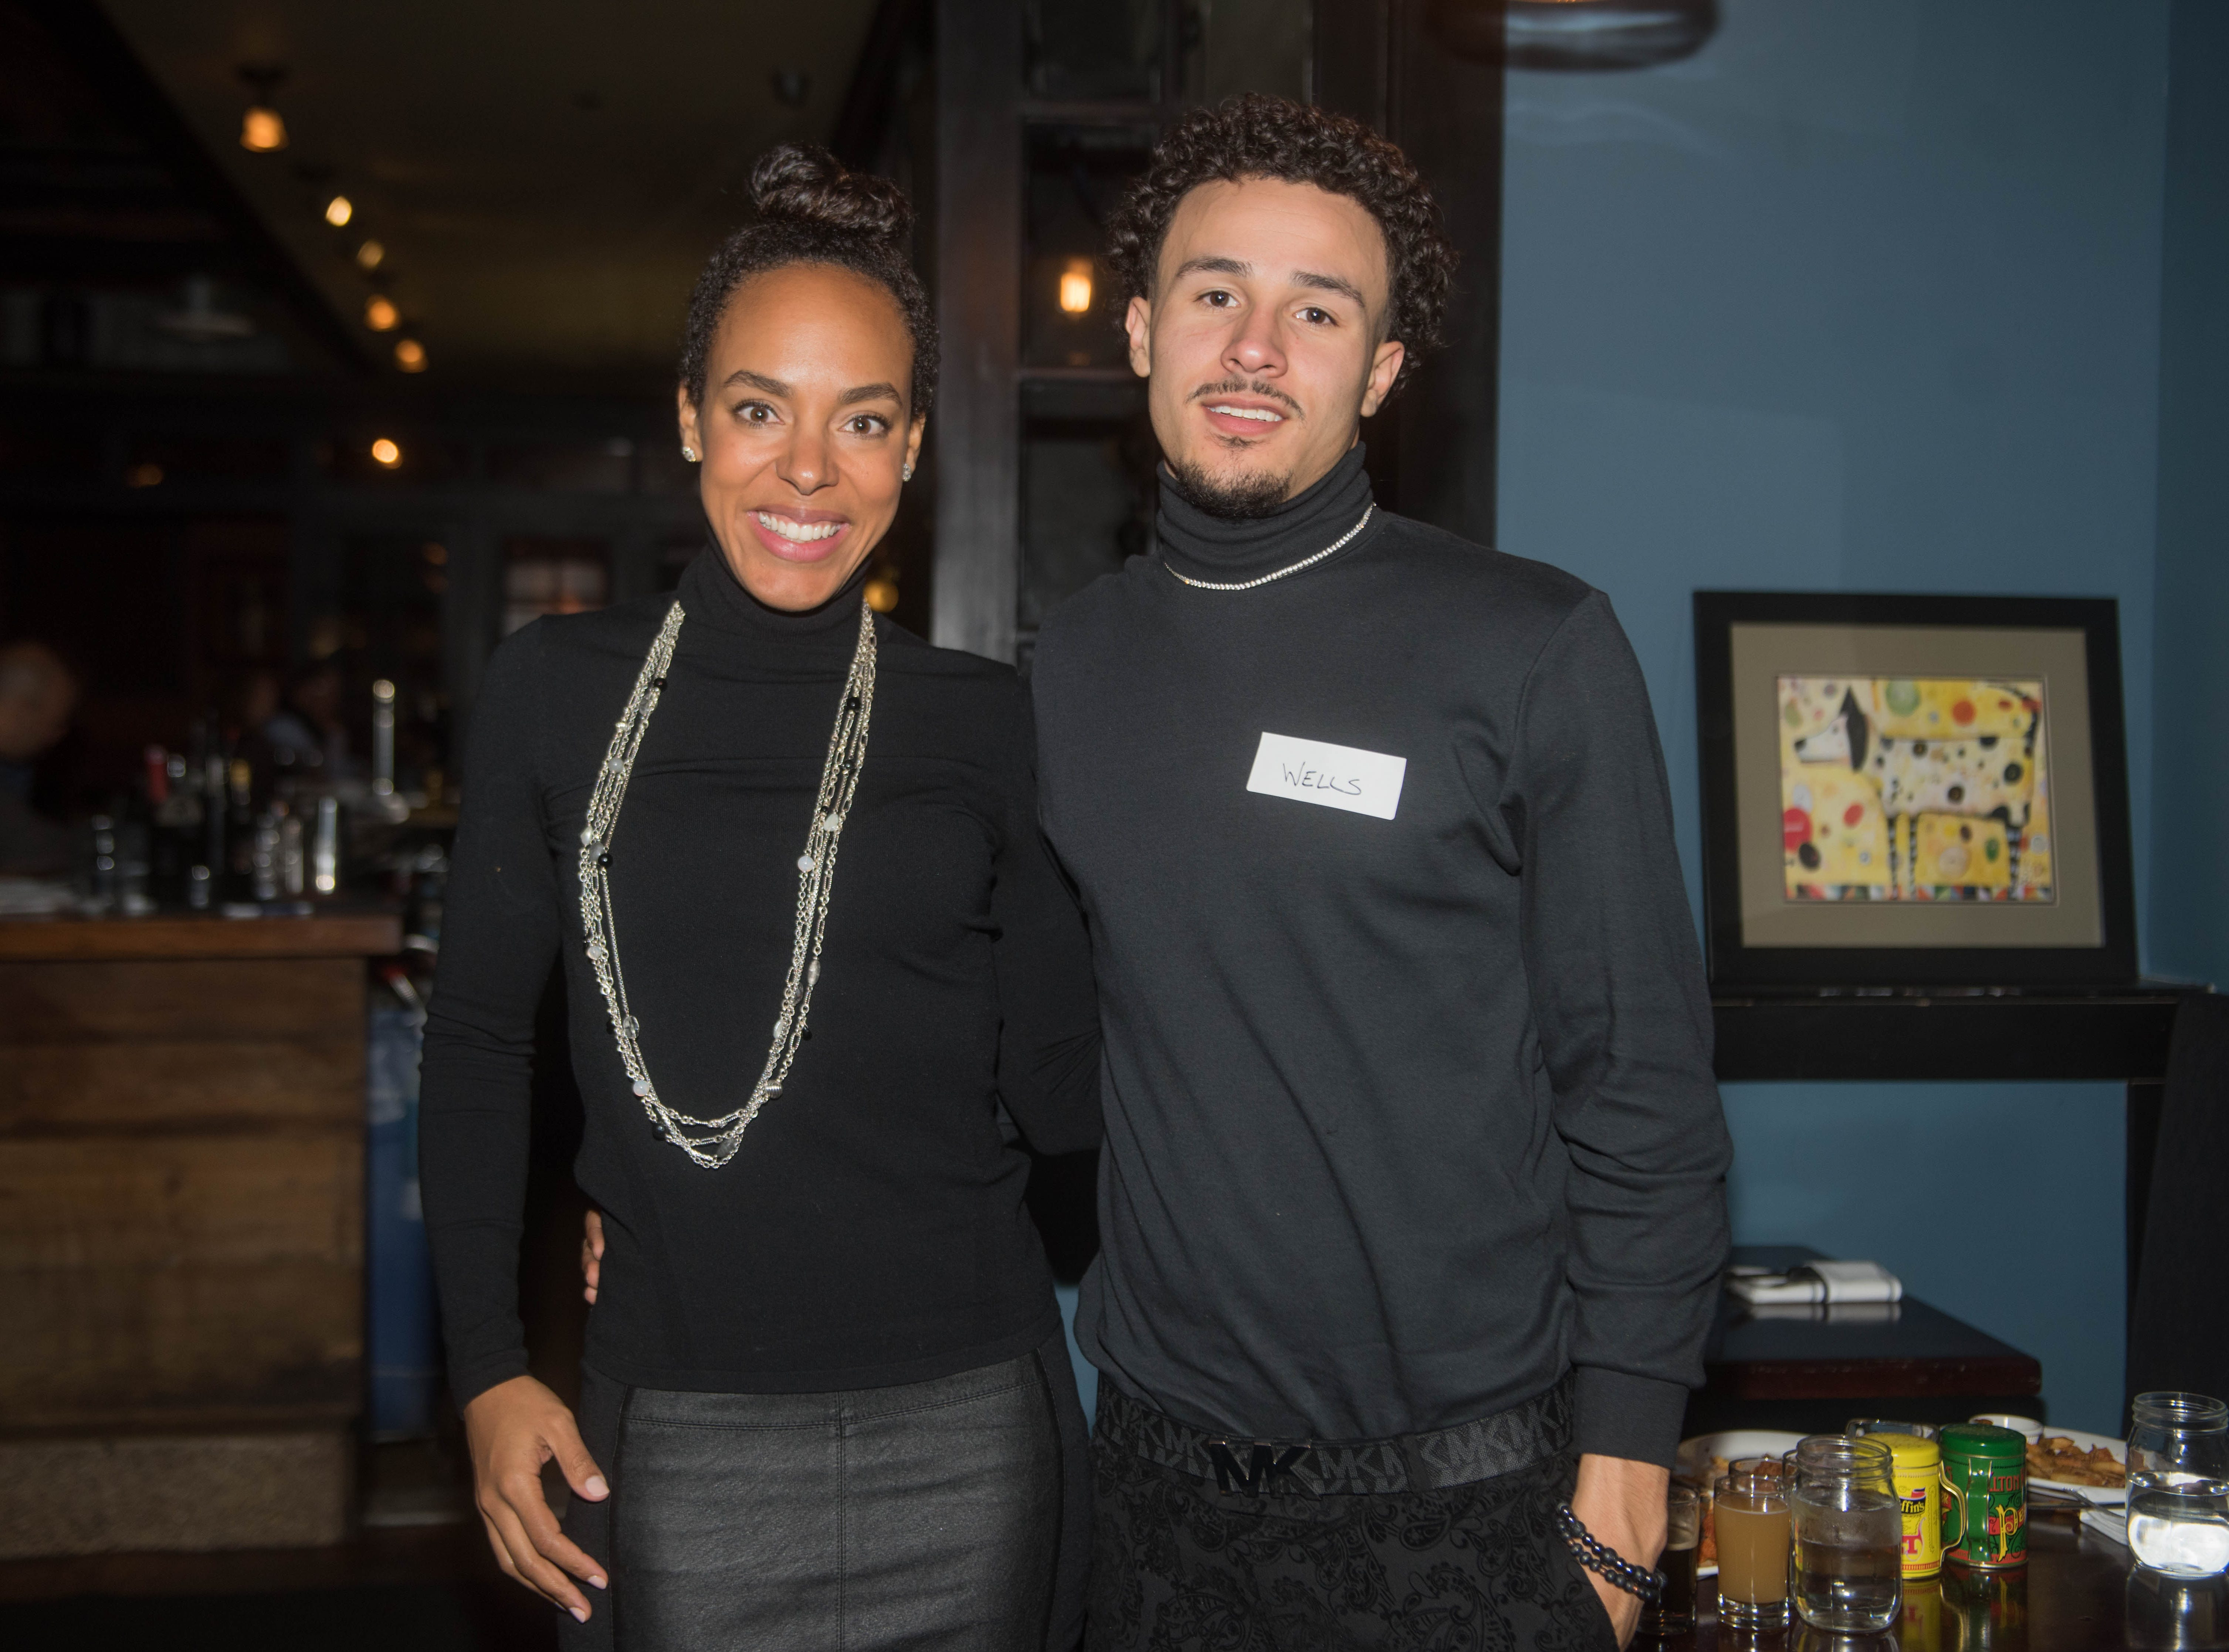 Lauran Tuck and Wells. (201) Magazine and NorthJersey.com held Taste Test Tuesday at he Dog and Cask in Rochelle Park with this month's cover model, Lauran Tuck and former cover model and former NY Giant Justin Tuck. 11/13/2018